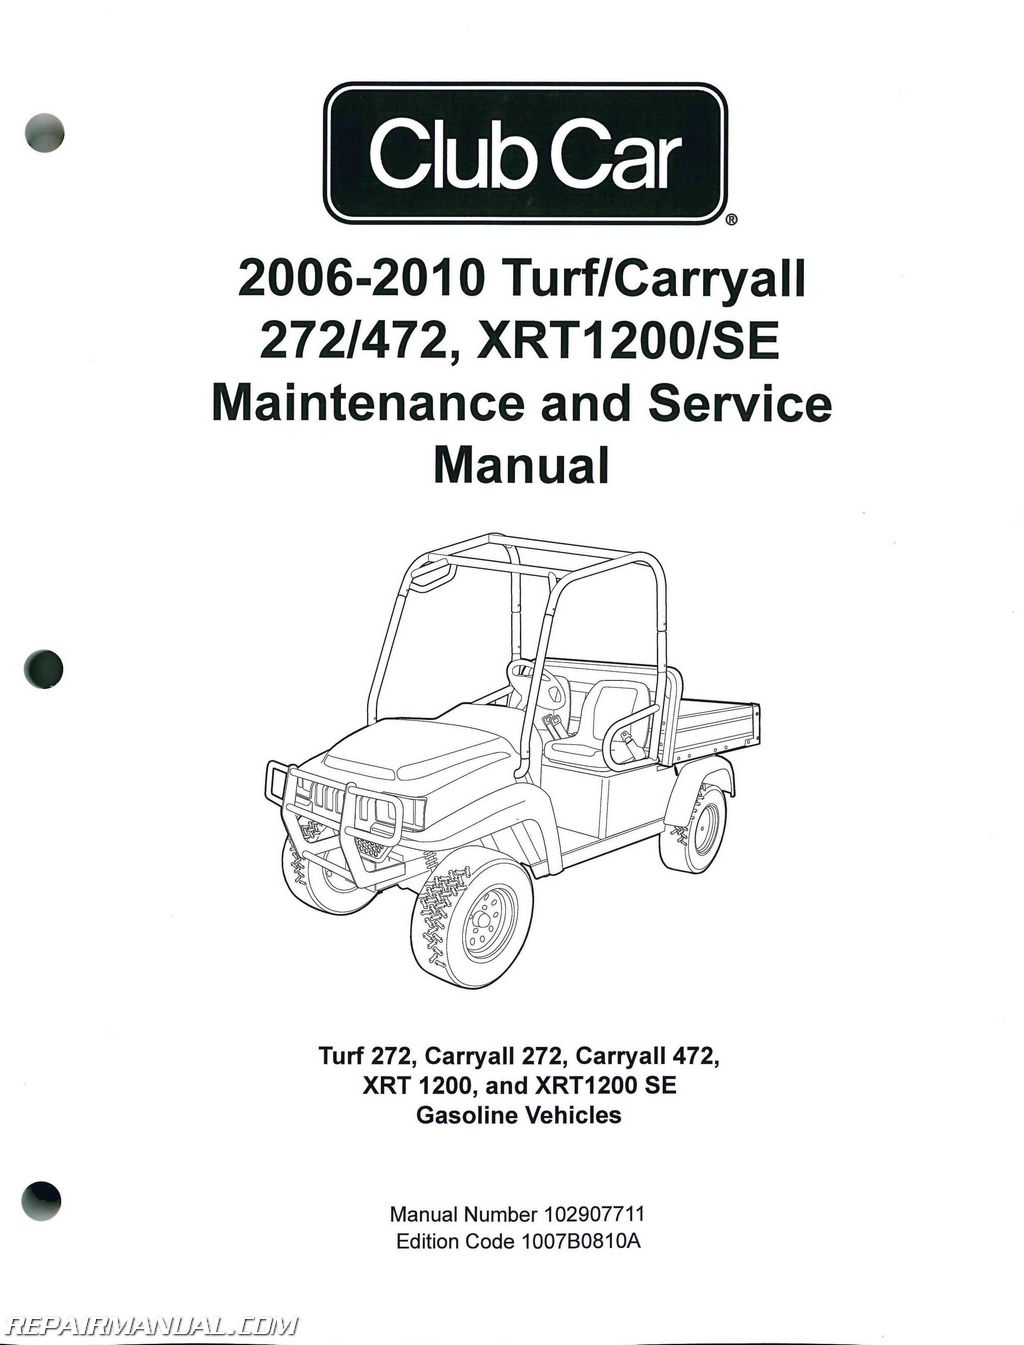 2006 2010 Club Car Turf Carryall 272 472 XRT1200 SE Turf 272 Carryall 272 Carryall 472 XRT 1200 and XRT1200 SE Gas Service Manual1?resize\\\=665%2C873 club car model 26580 charger wiring diagram wiring diagrams Schumacher Battery Charger Wiring Diagram at edmiracle.co